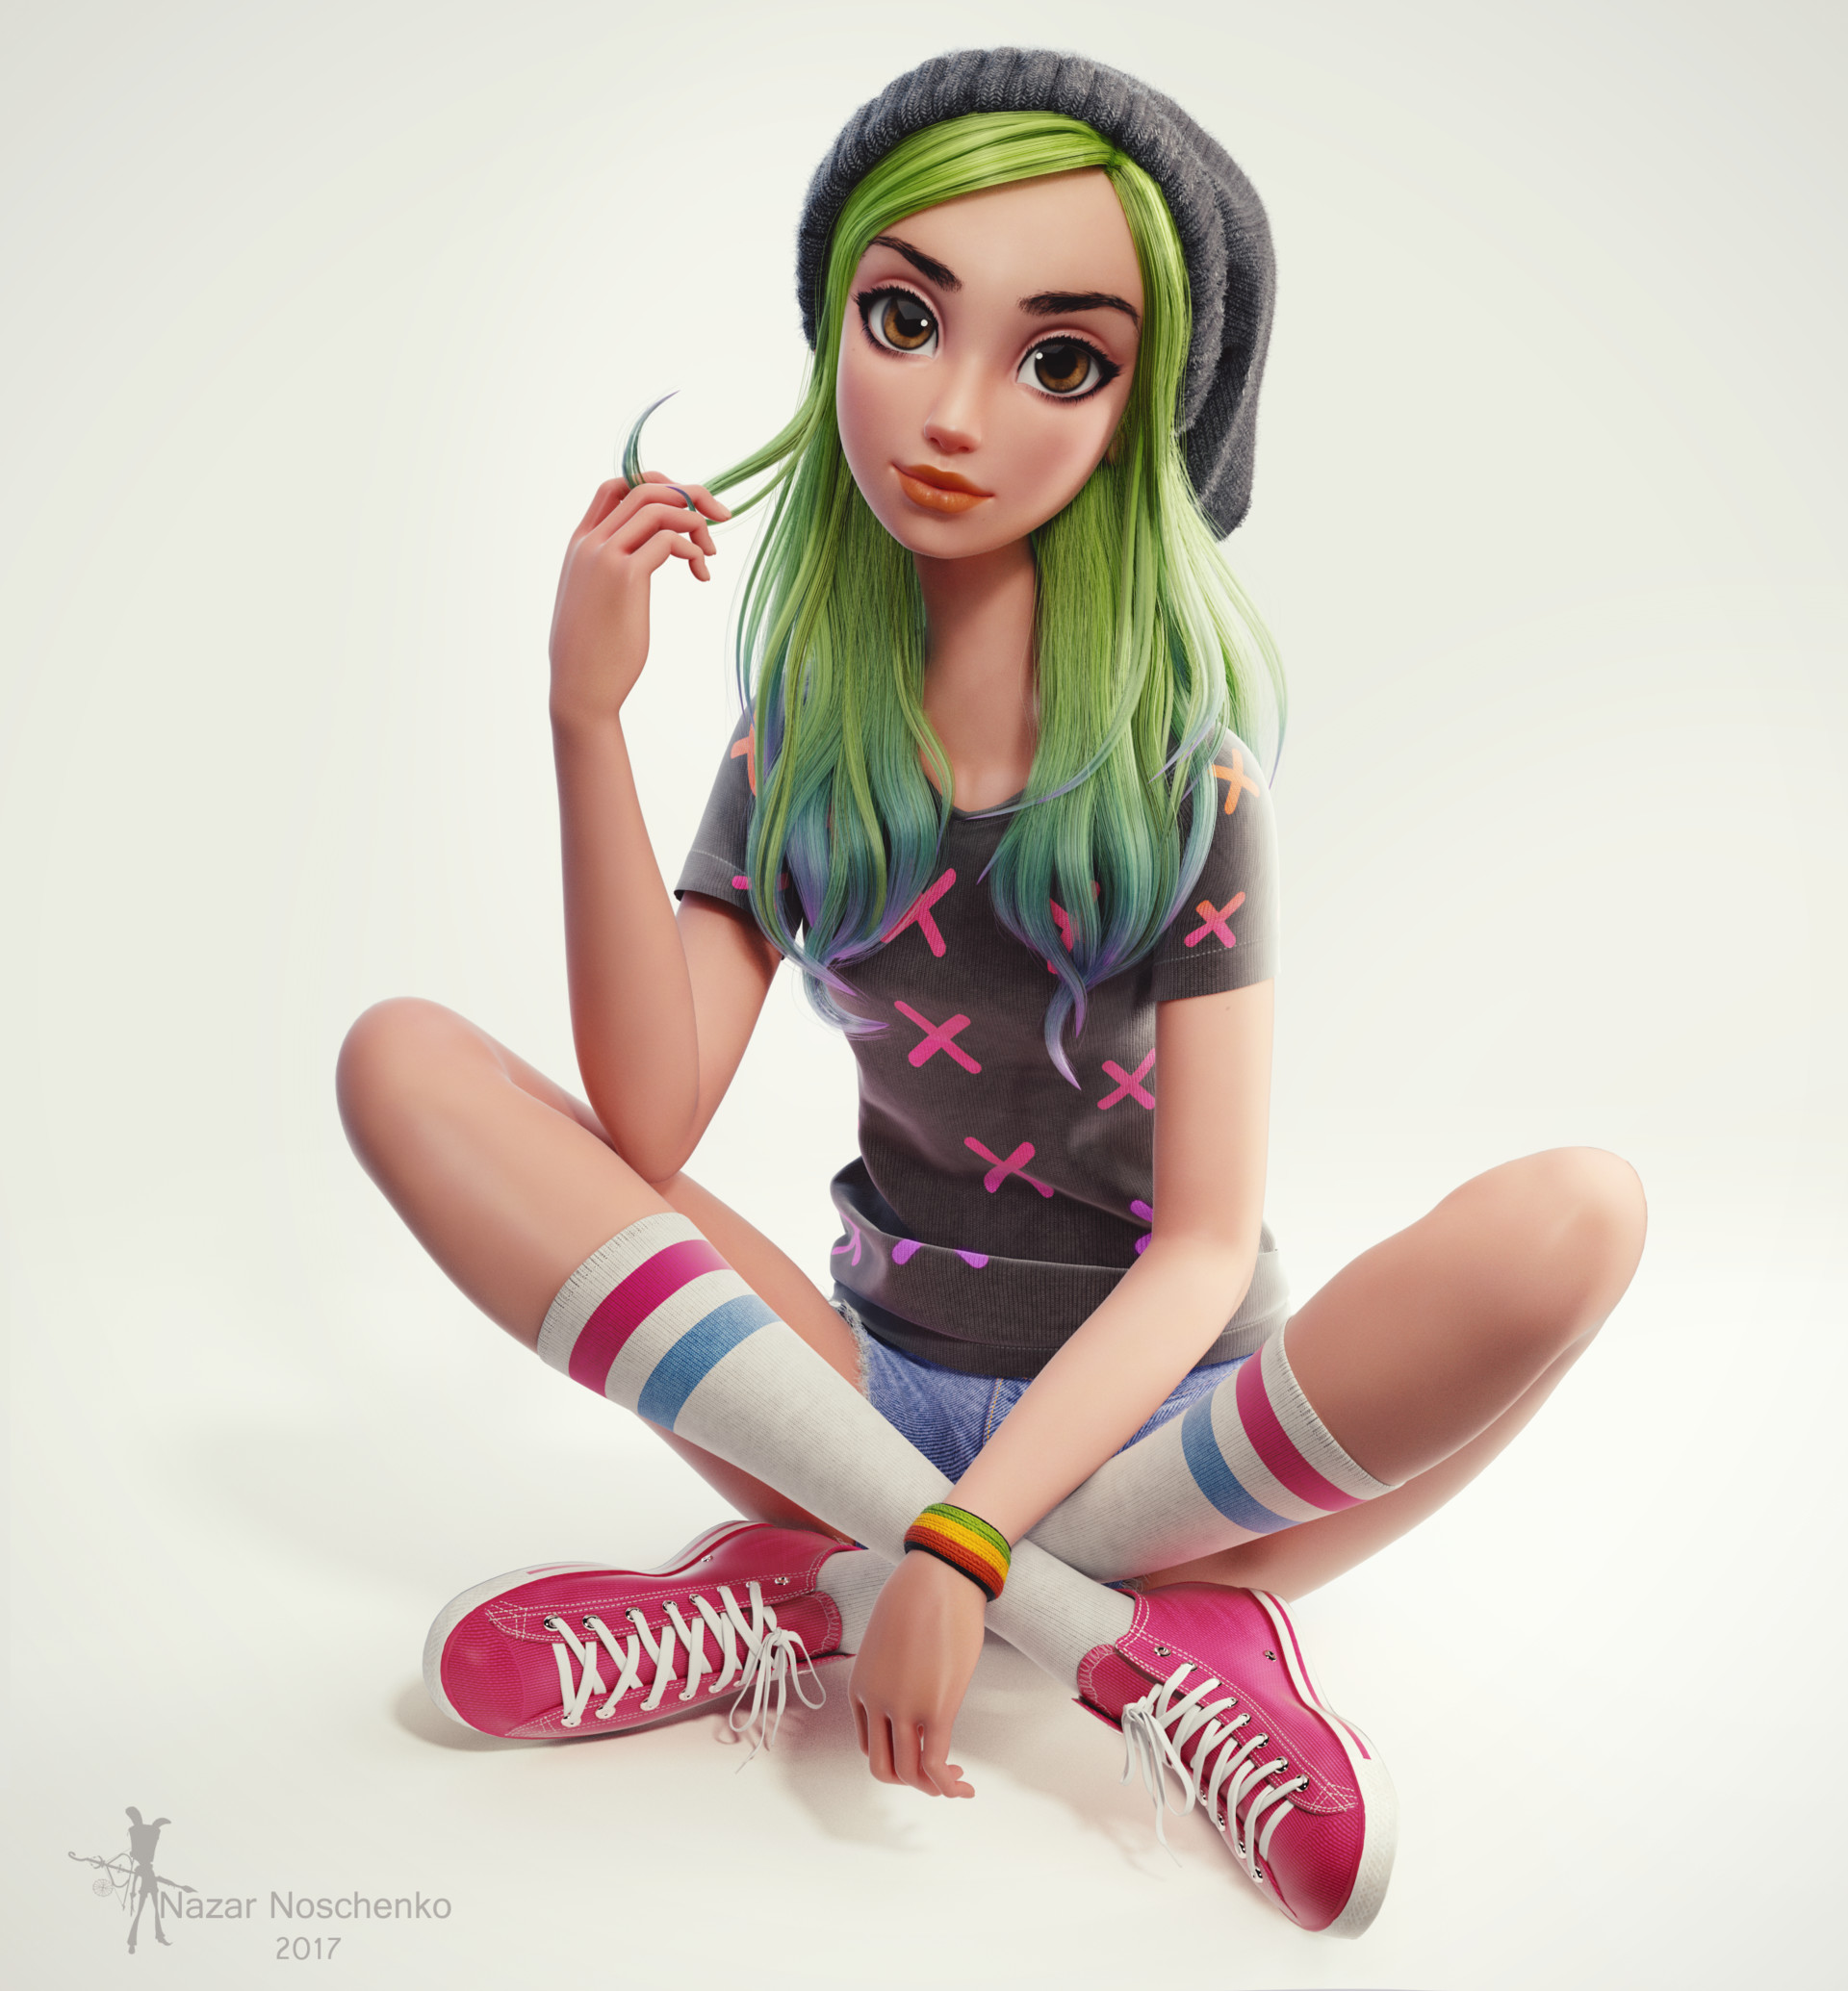 Artstation - Green Hair Girl, Nazar Noschenko-6337